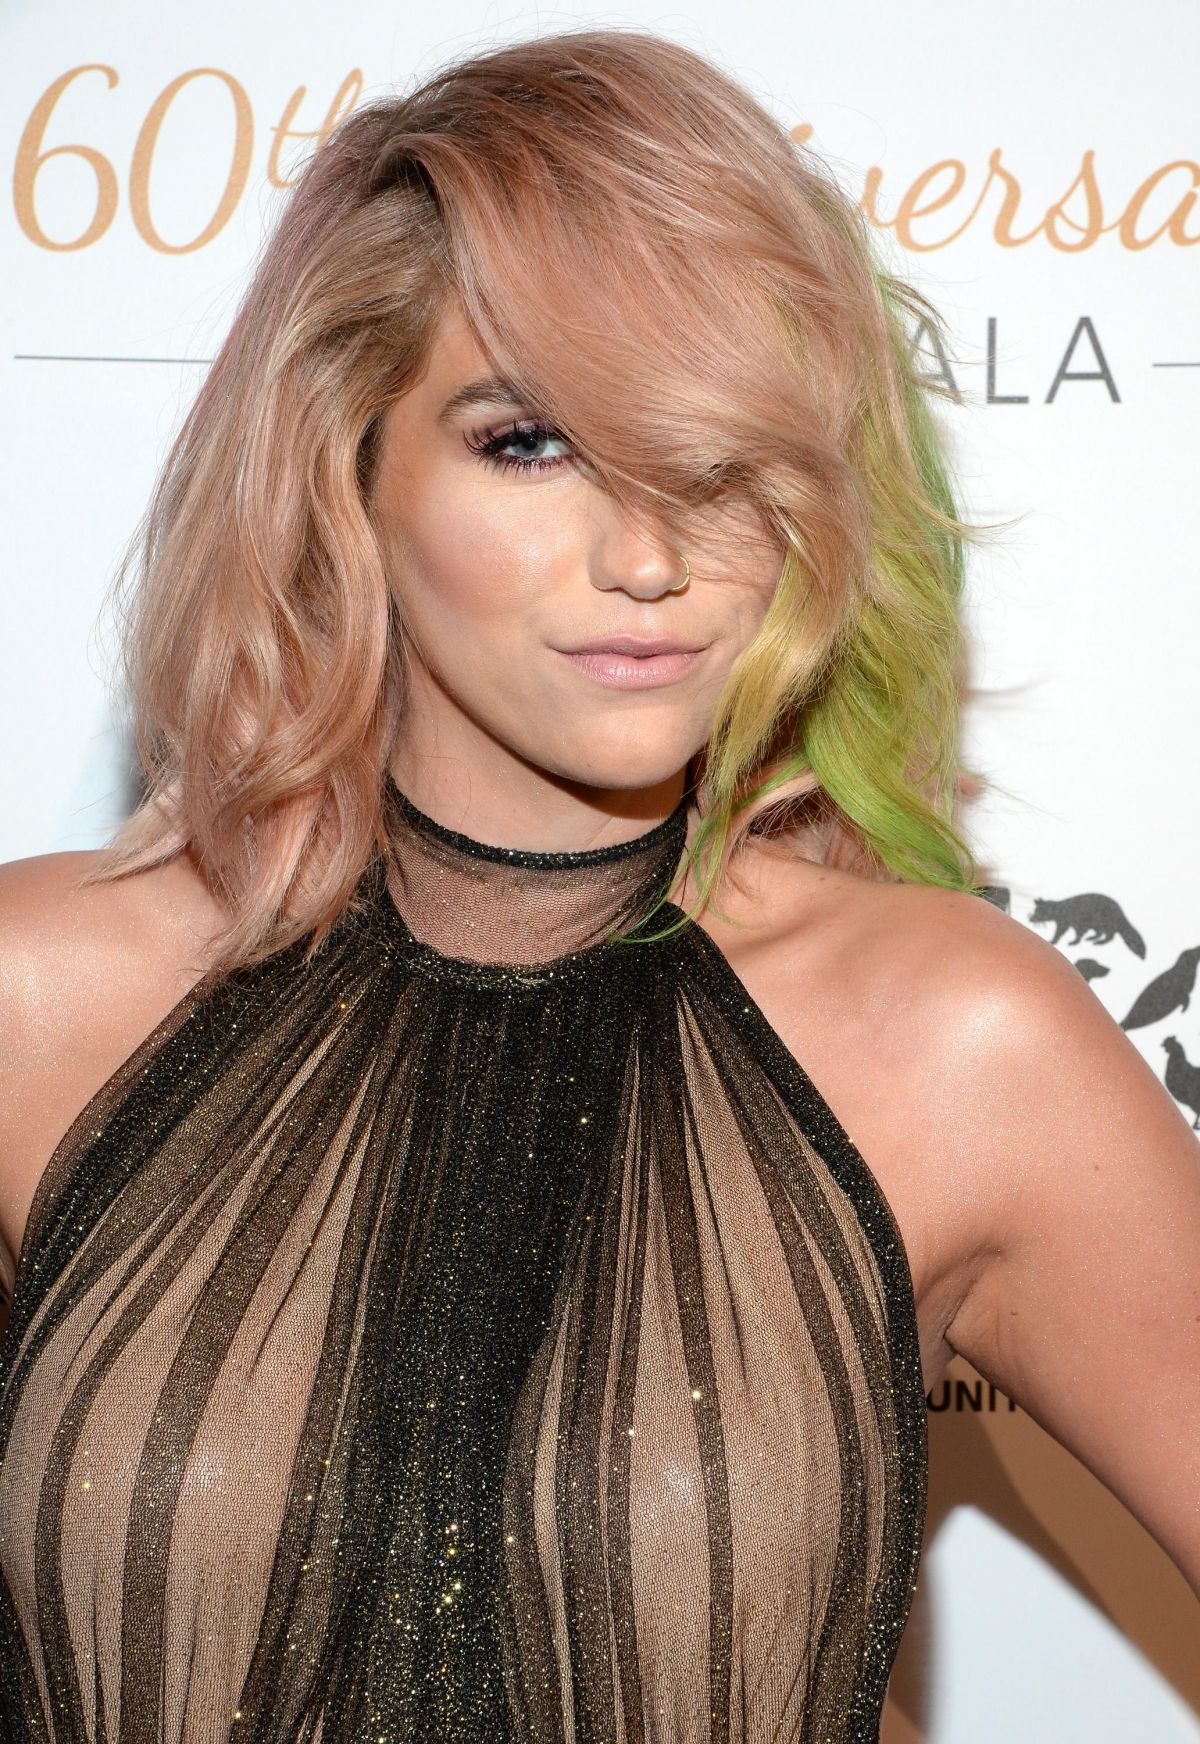 Kesha Sebert Archives  Page 4 of 5  HawtCelebs  HawtCelebs - Hairstyles For 50 Year Old Woman